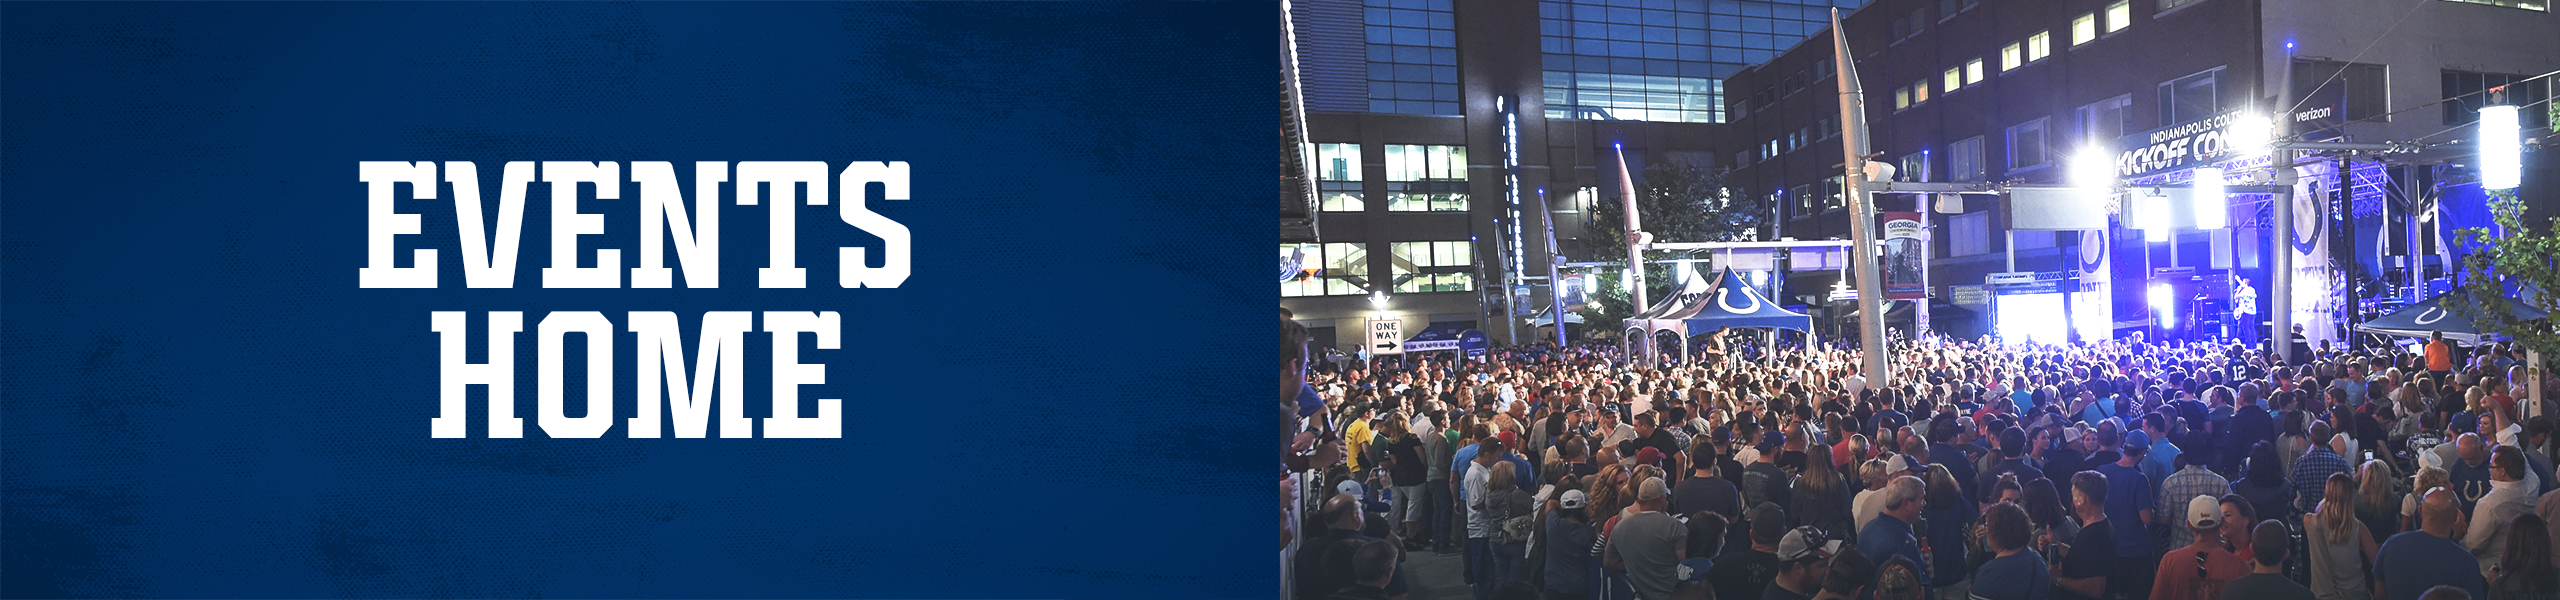 Indianapolis Colts Events Home